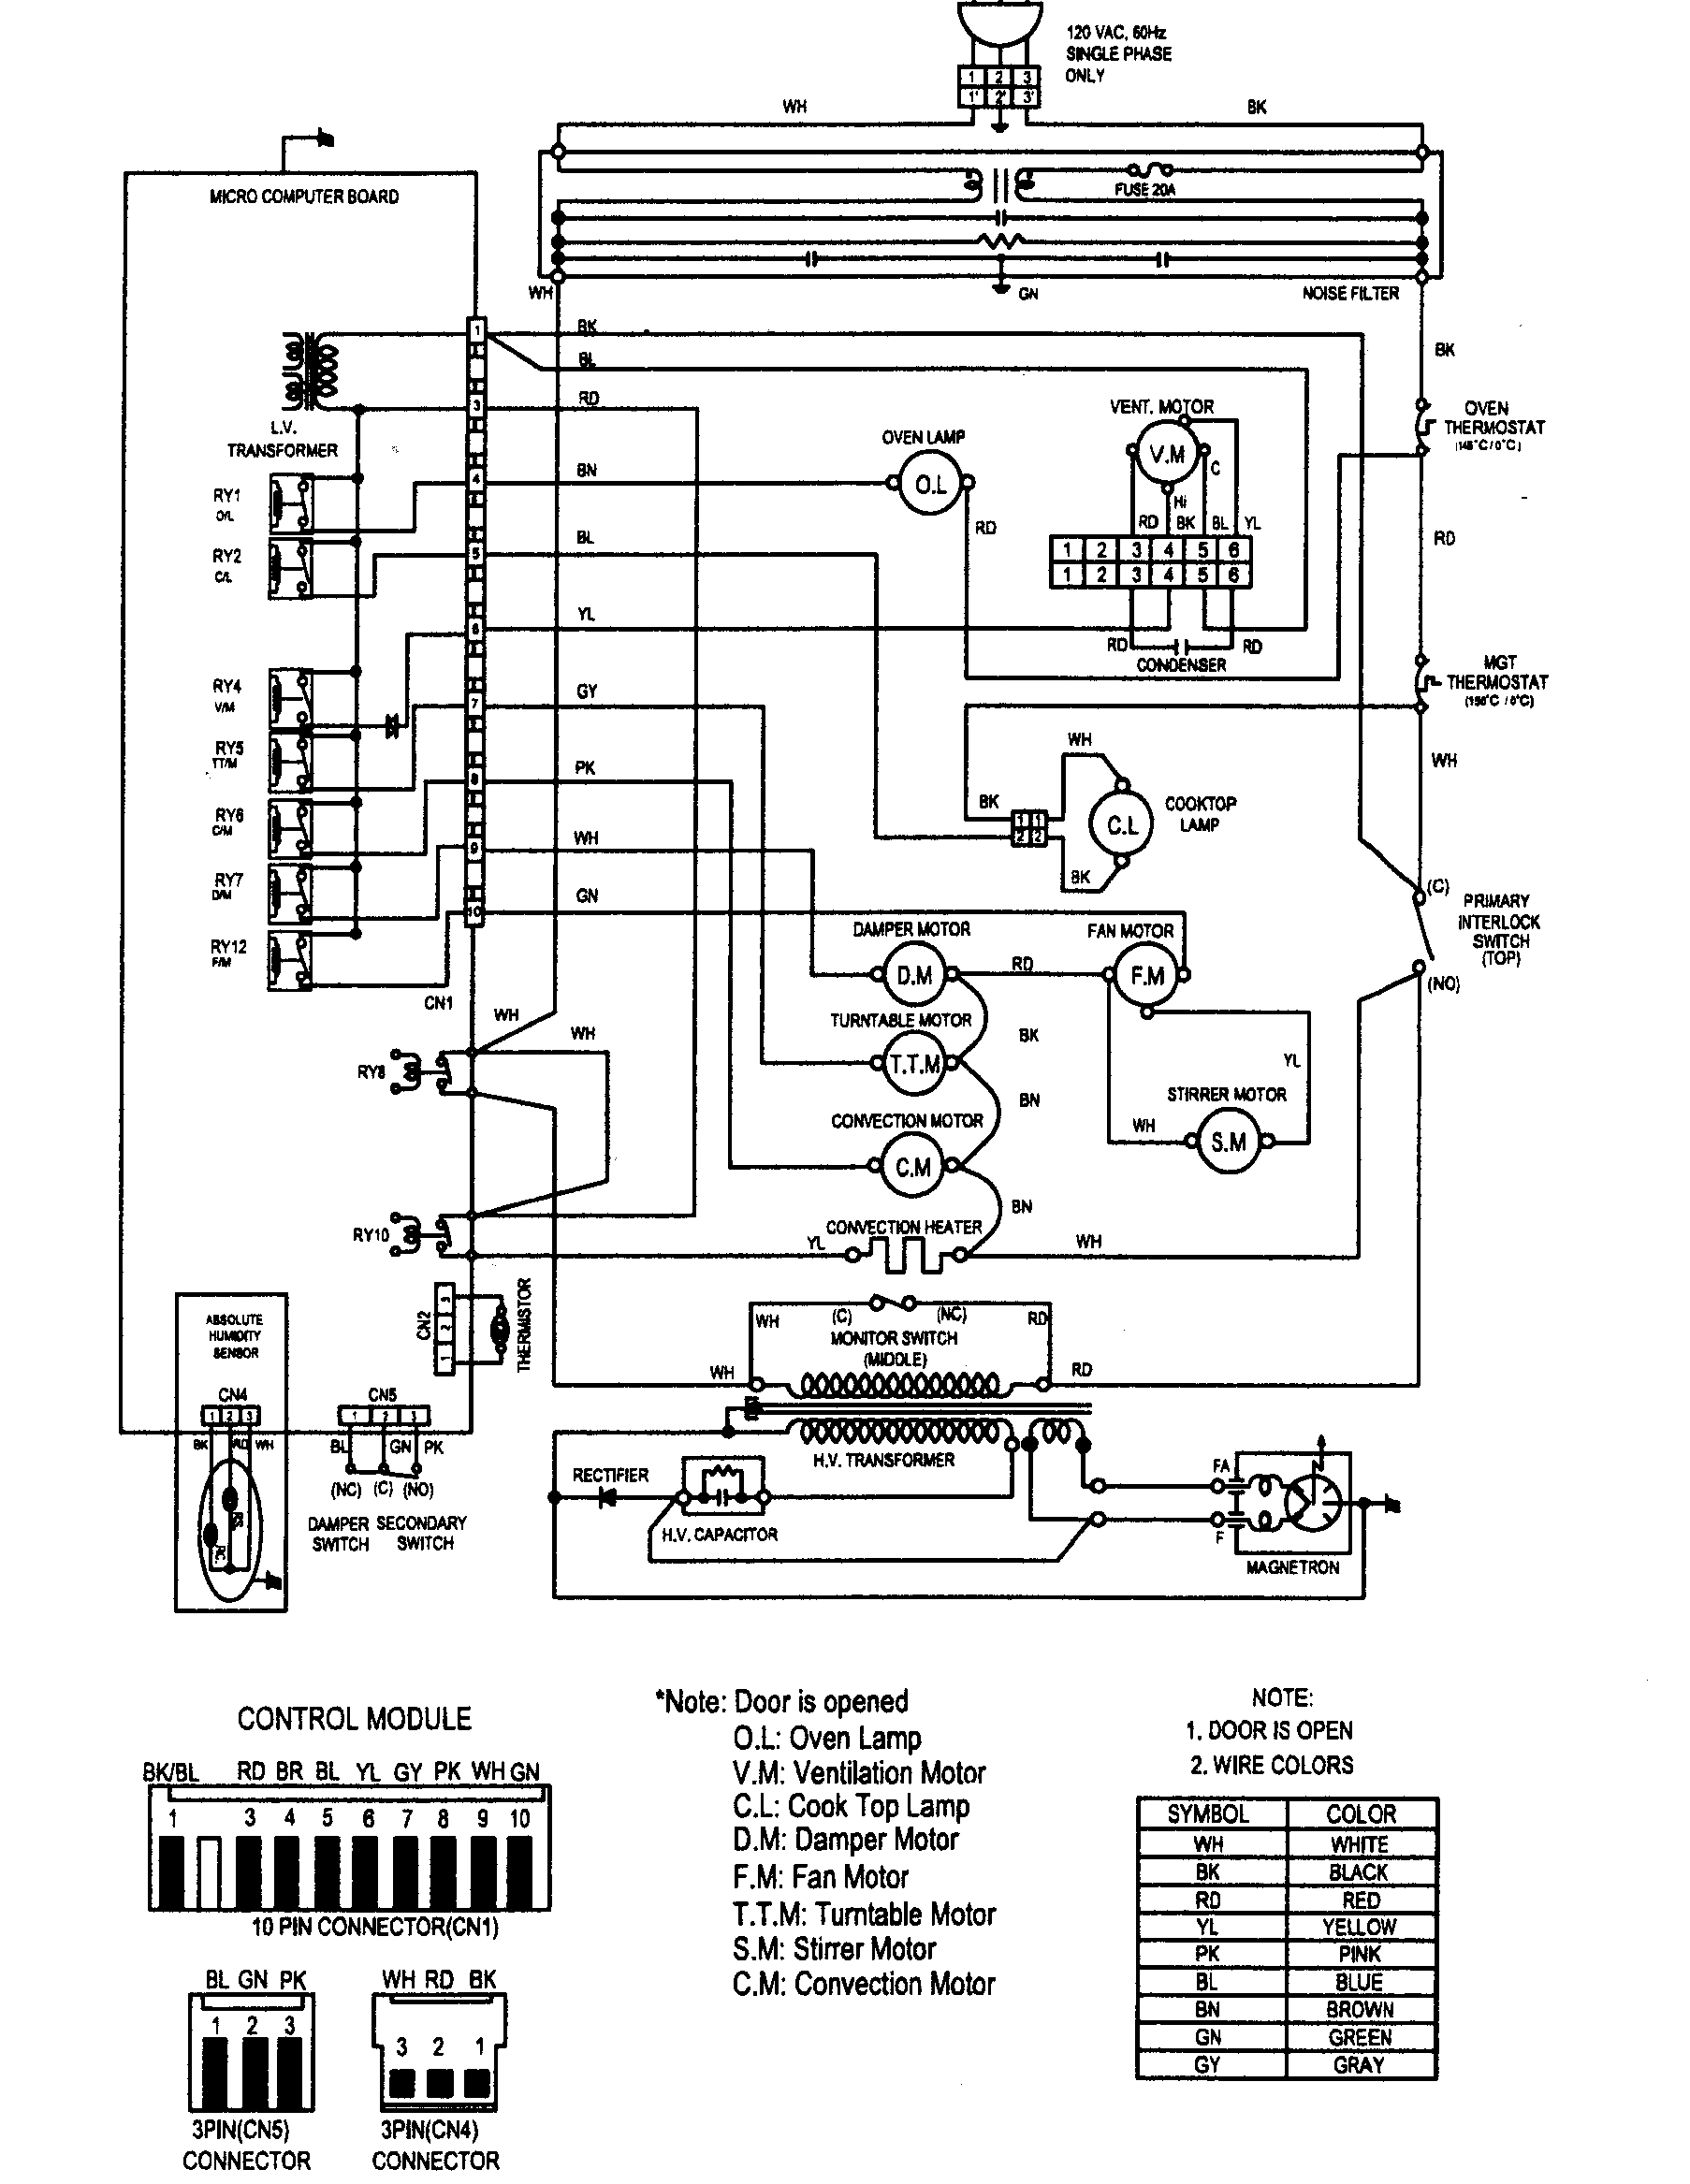 Wire Diagram For Kenmore Elite 790 Wall Oven - Wiring Diagram List on hard start capacitor, cool start wiring diagram, smart start wiring diagram, ready start wiring diagram, run start wiring diagram, soft start wiring diagram, hard start coil, hard drive wiring diagram,